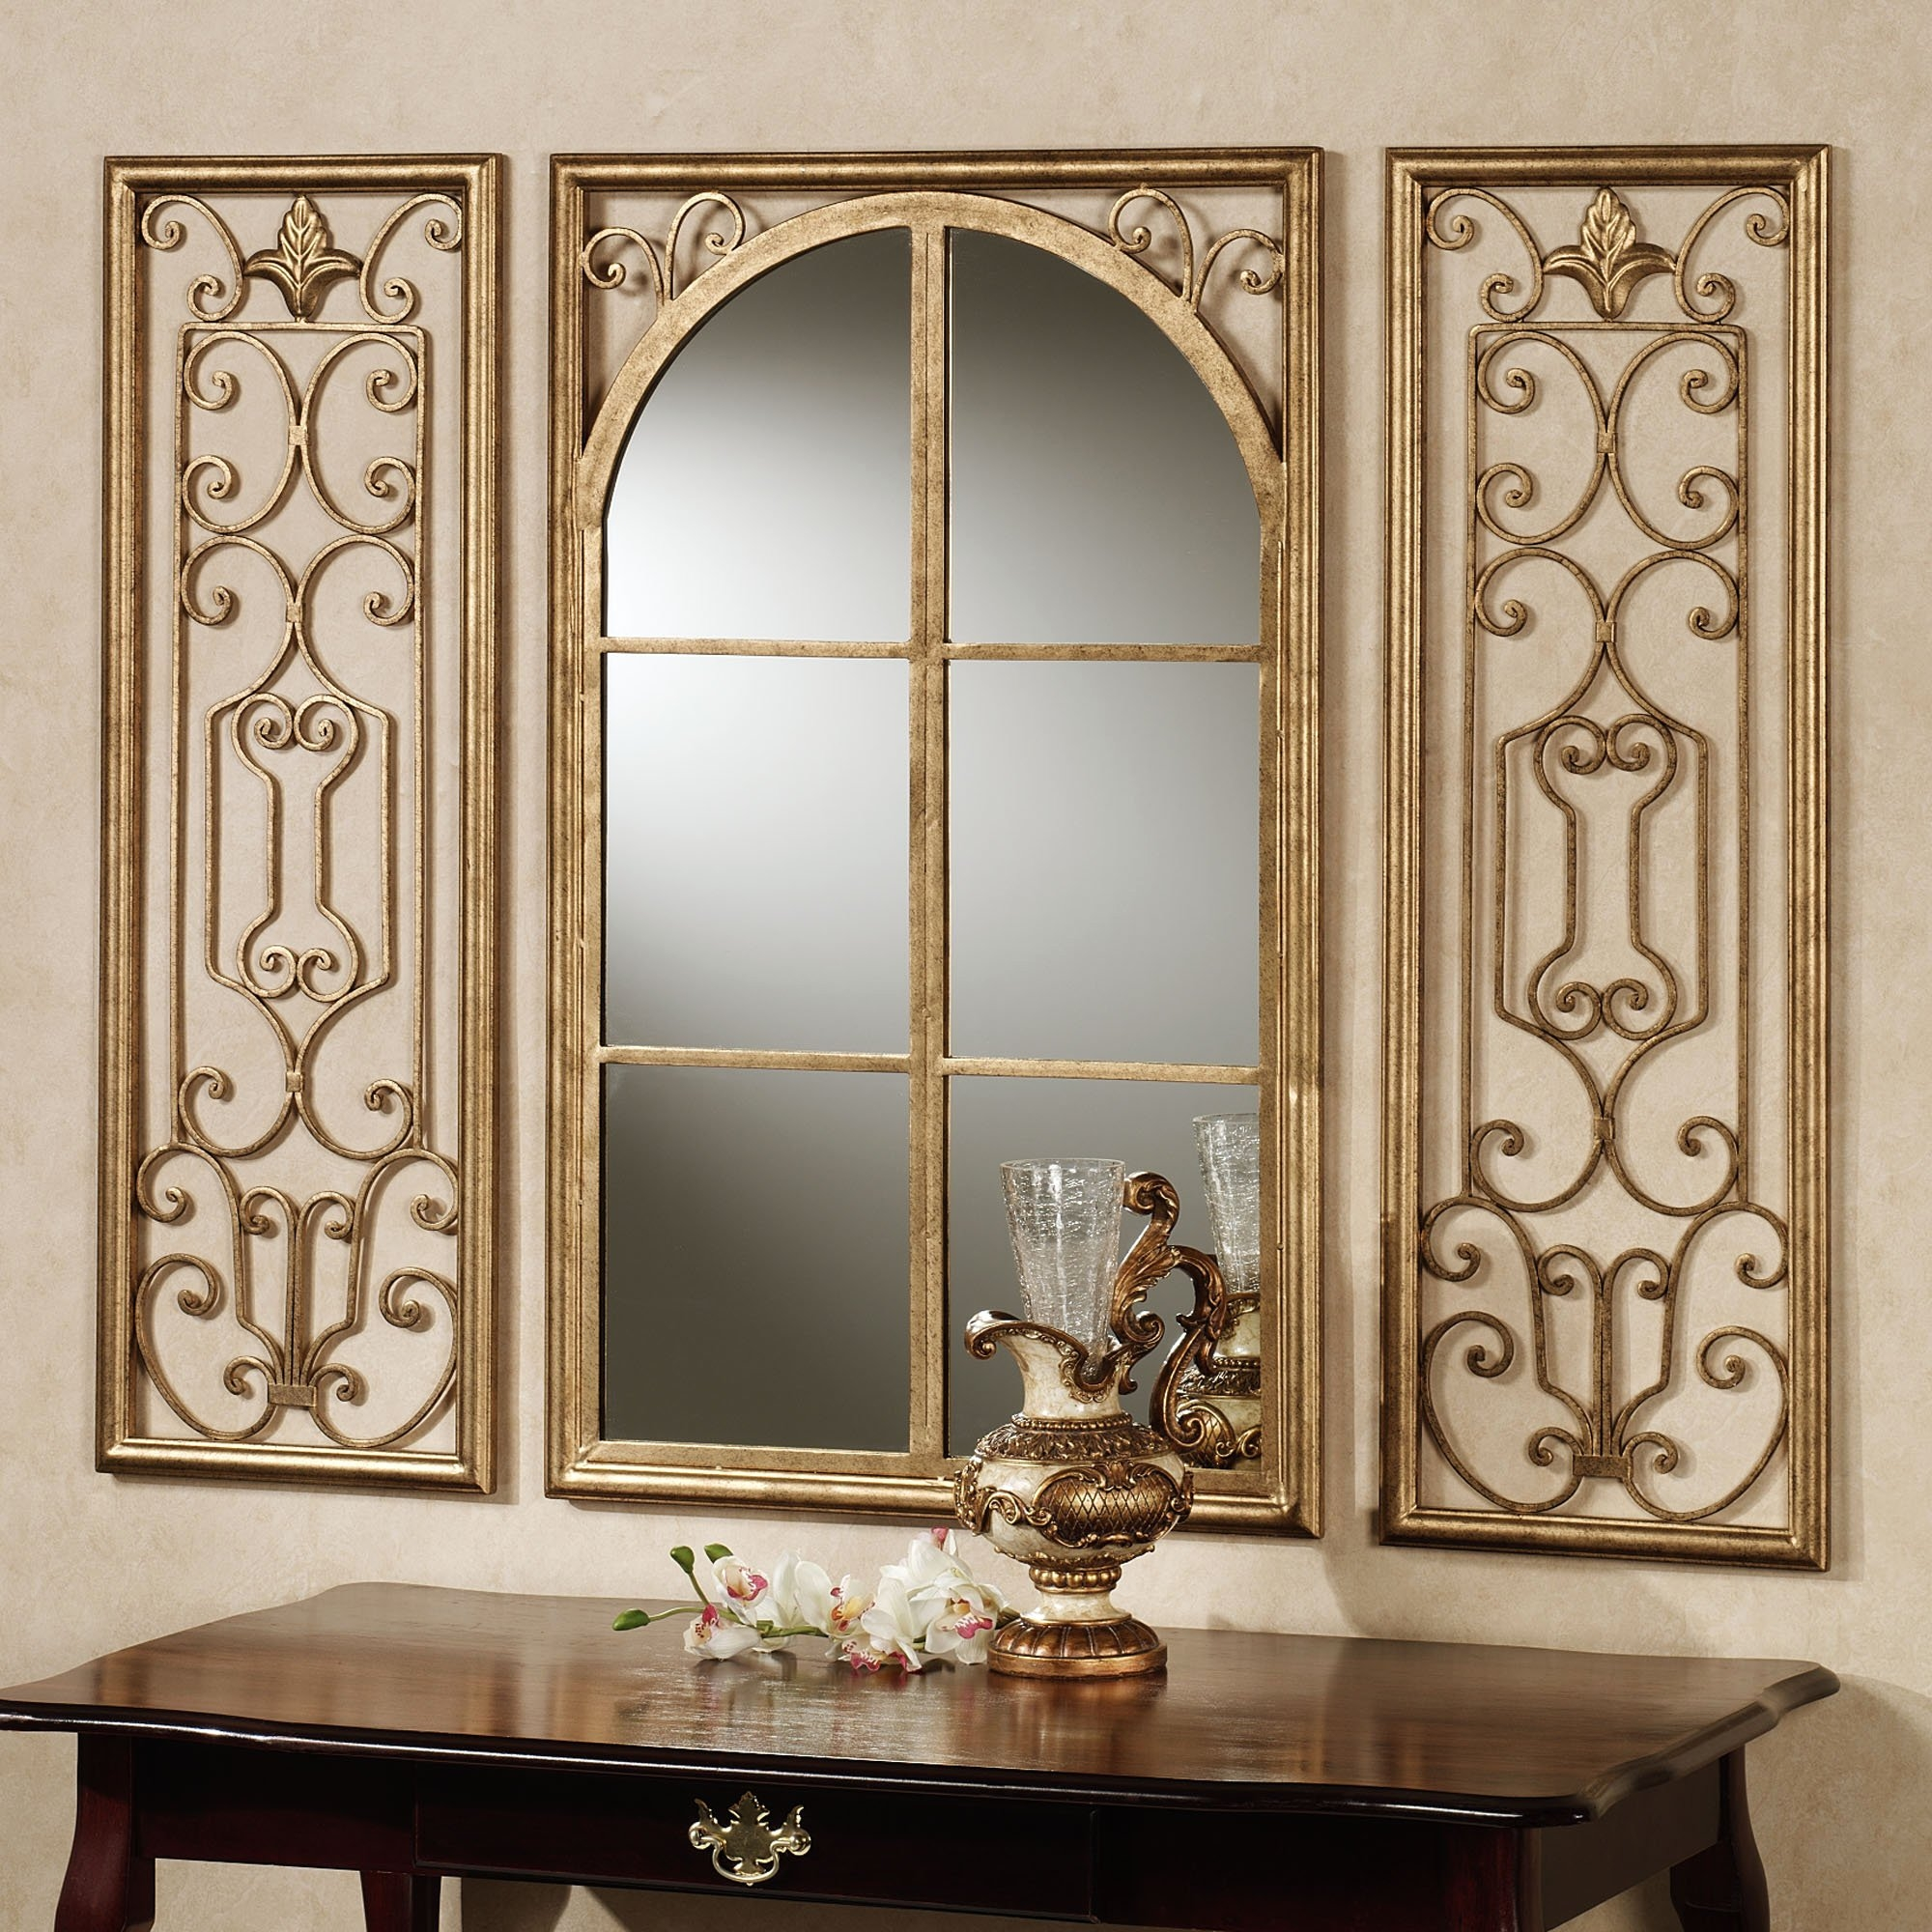 Large Wall Mirror For Living Room Decorating Mirrors New Ideas Throughout Fancy Mirrors For Sale (Image 13 of 14)